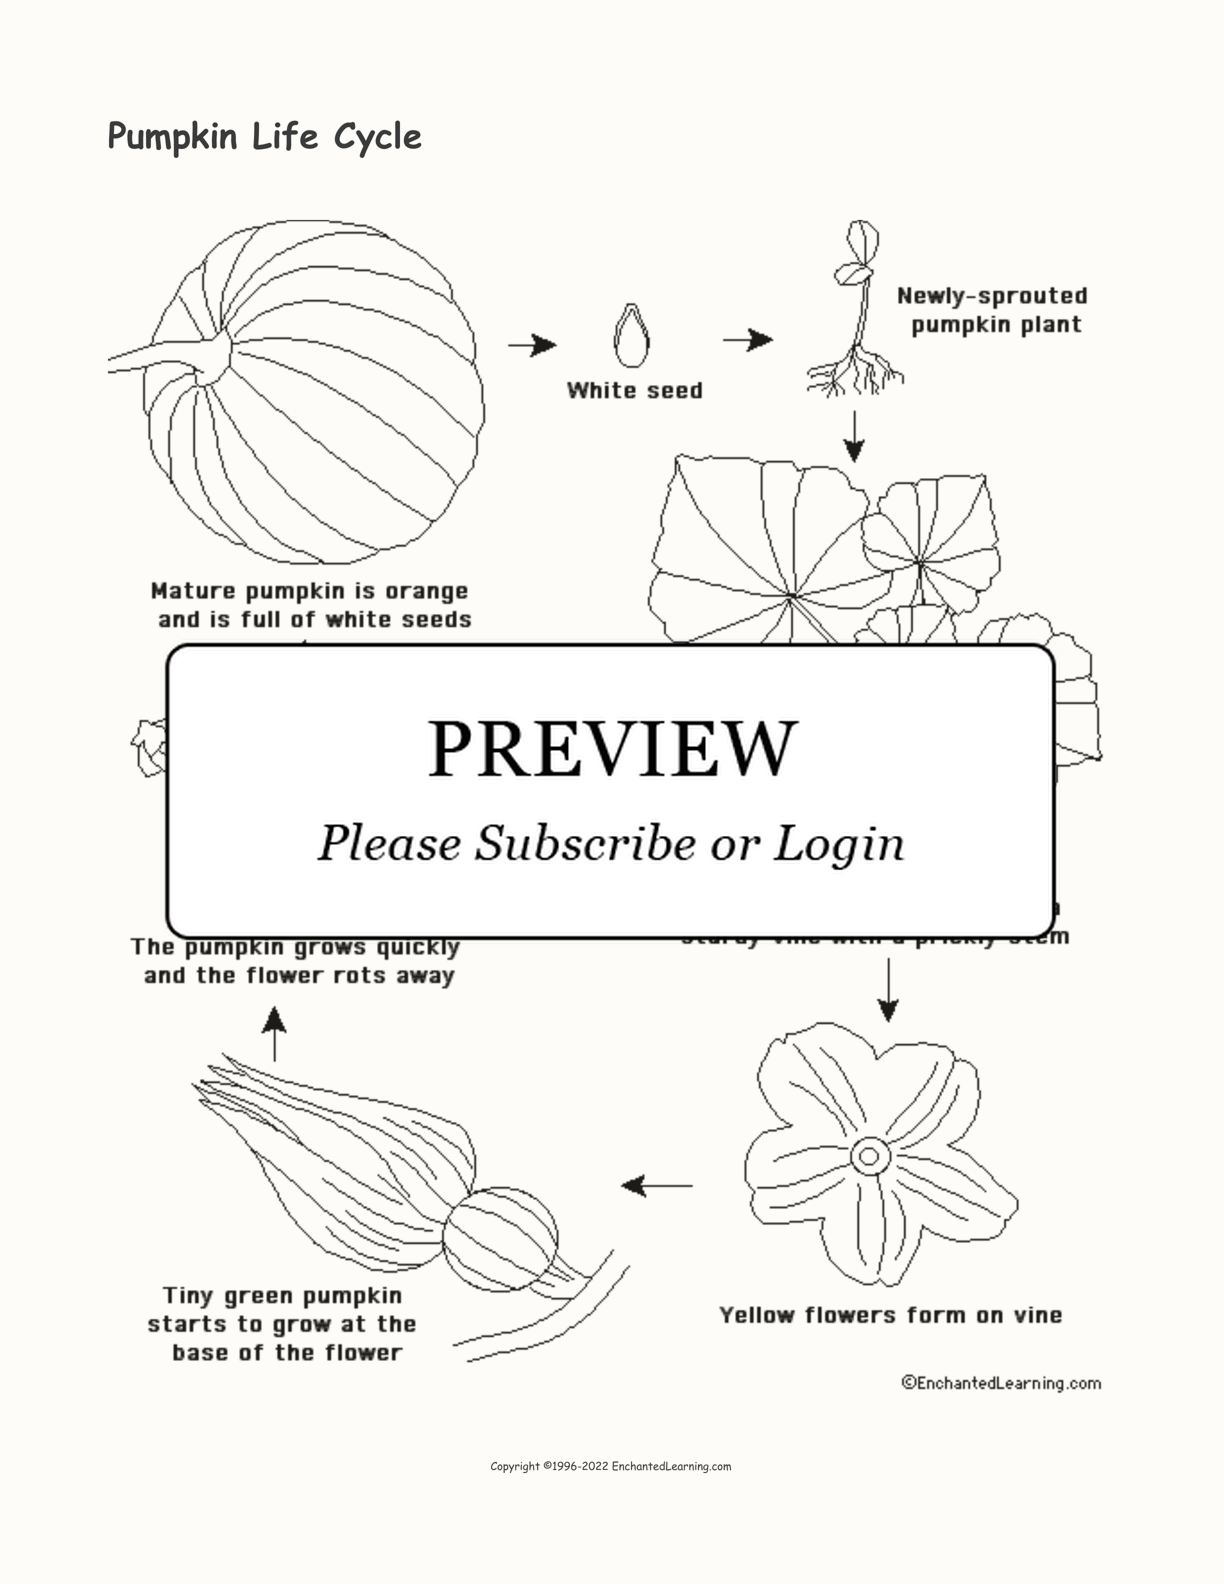 Pumpkin Life Cycle Printout